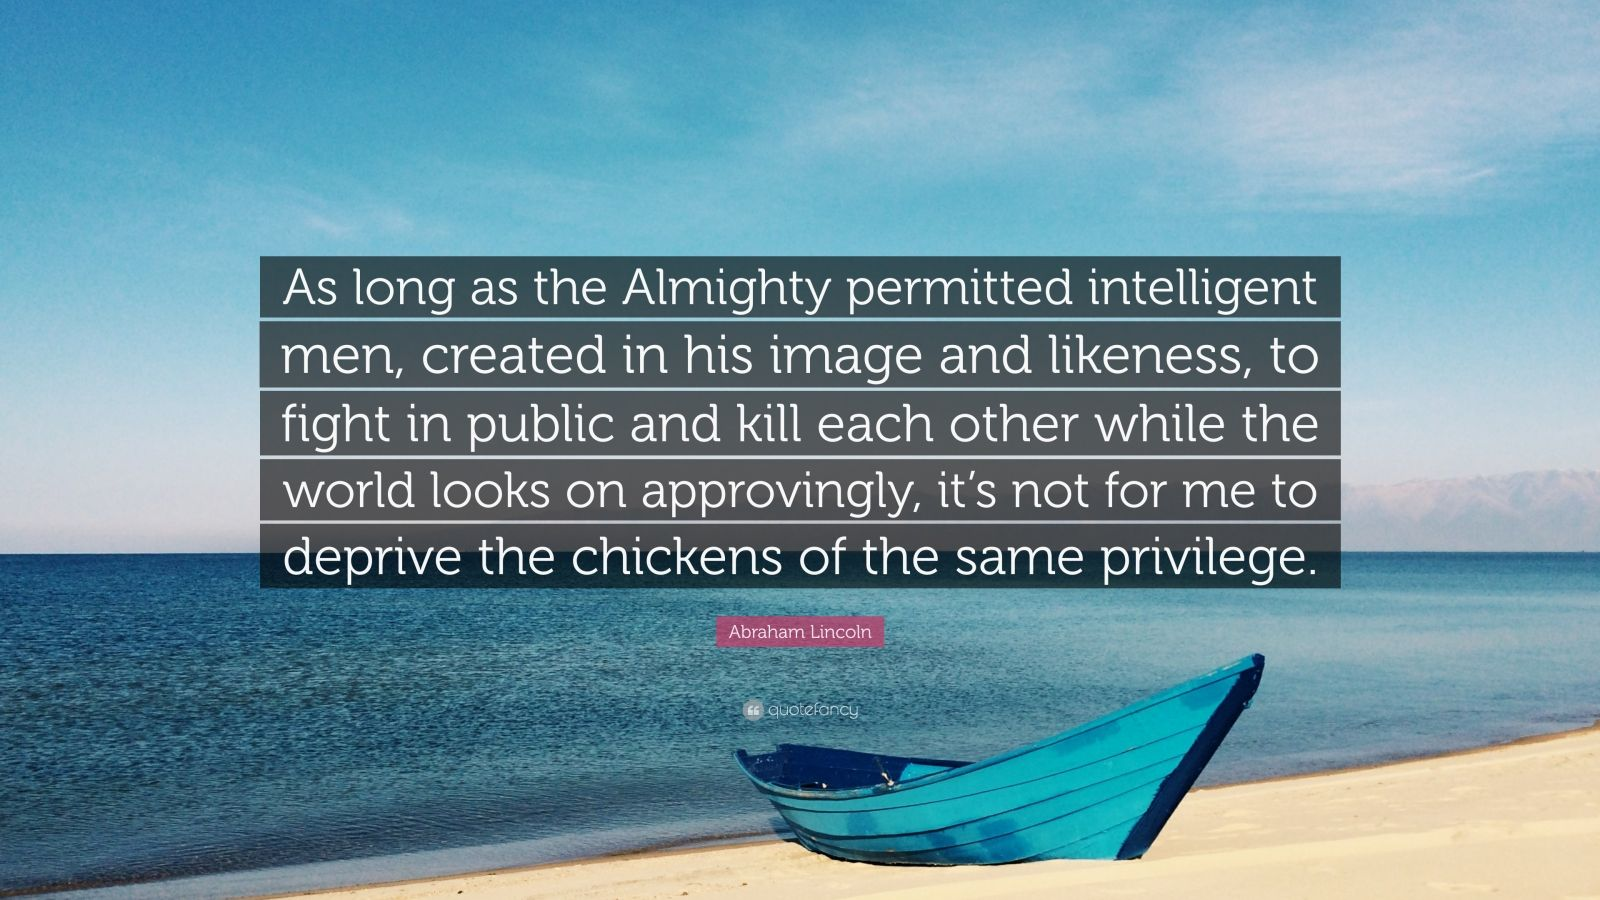 """Abraham Lincoln Quote: """"As long as the Almighty permitted intelligent men, created in his image and likeness, to fight in public and kill each other while the world looks on approvingly, it's not for me to deprive the chickens of the same privilege."""""""